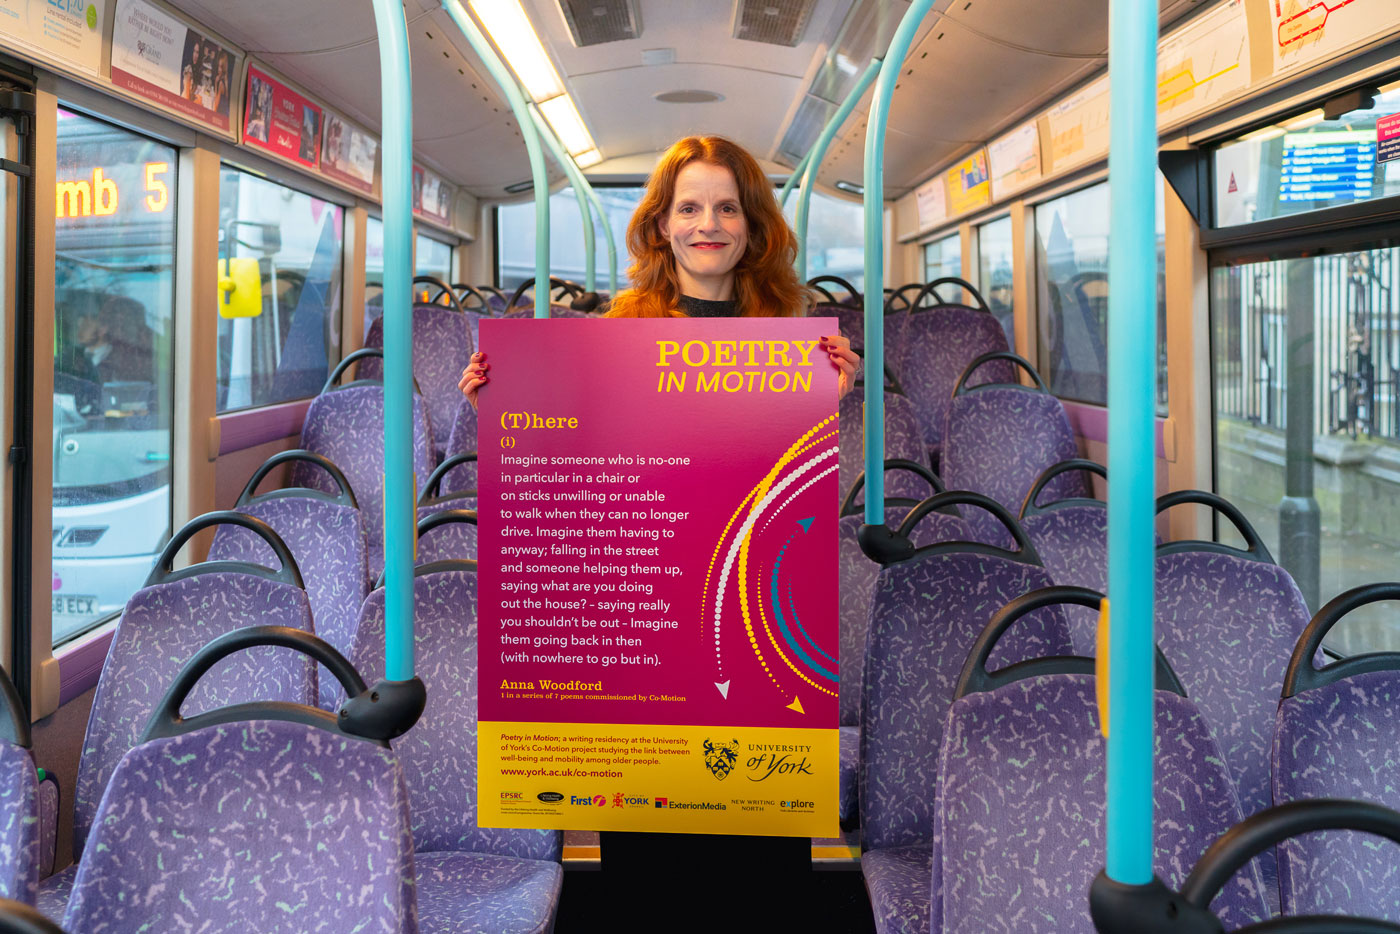 Anna Woodford stands in a First York bus aisle, holding her Poetry in Motion poster design